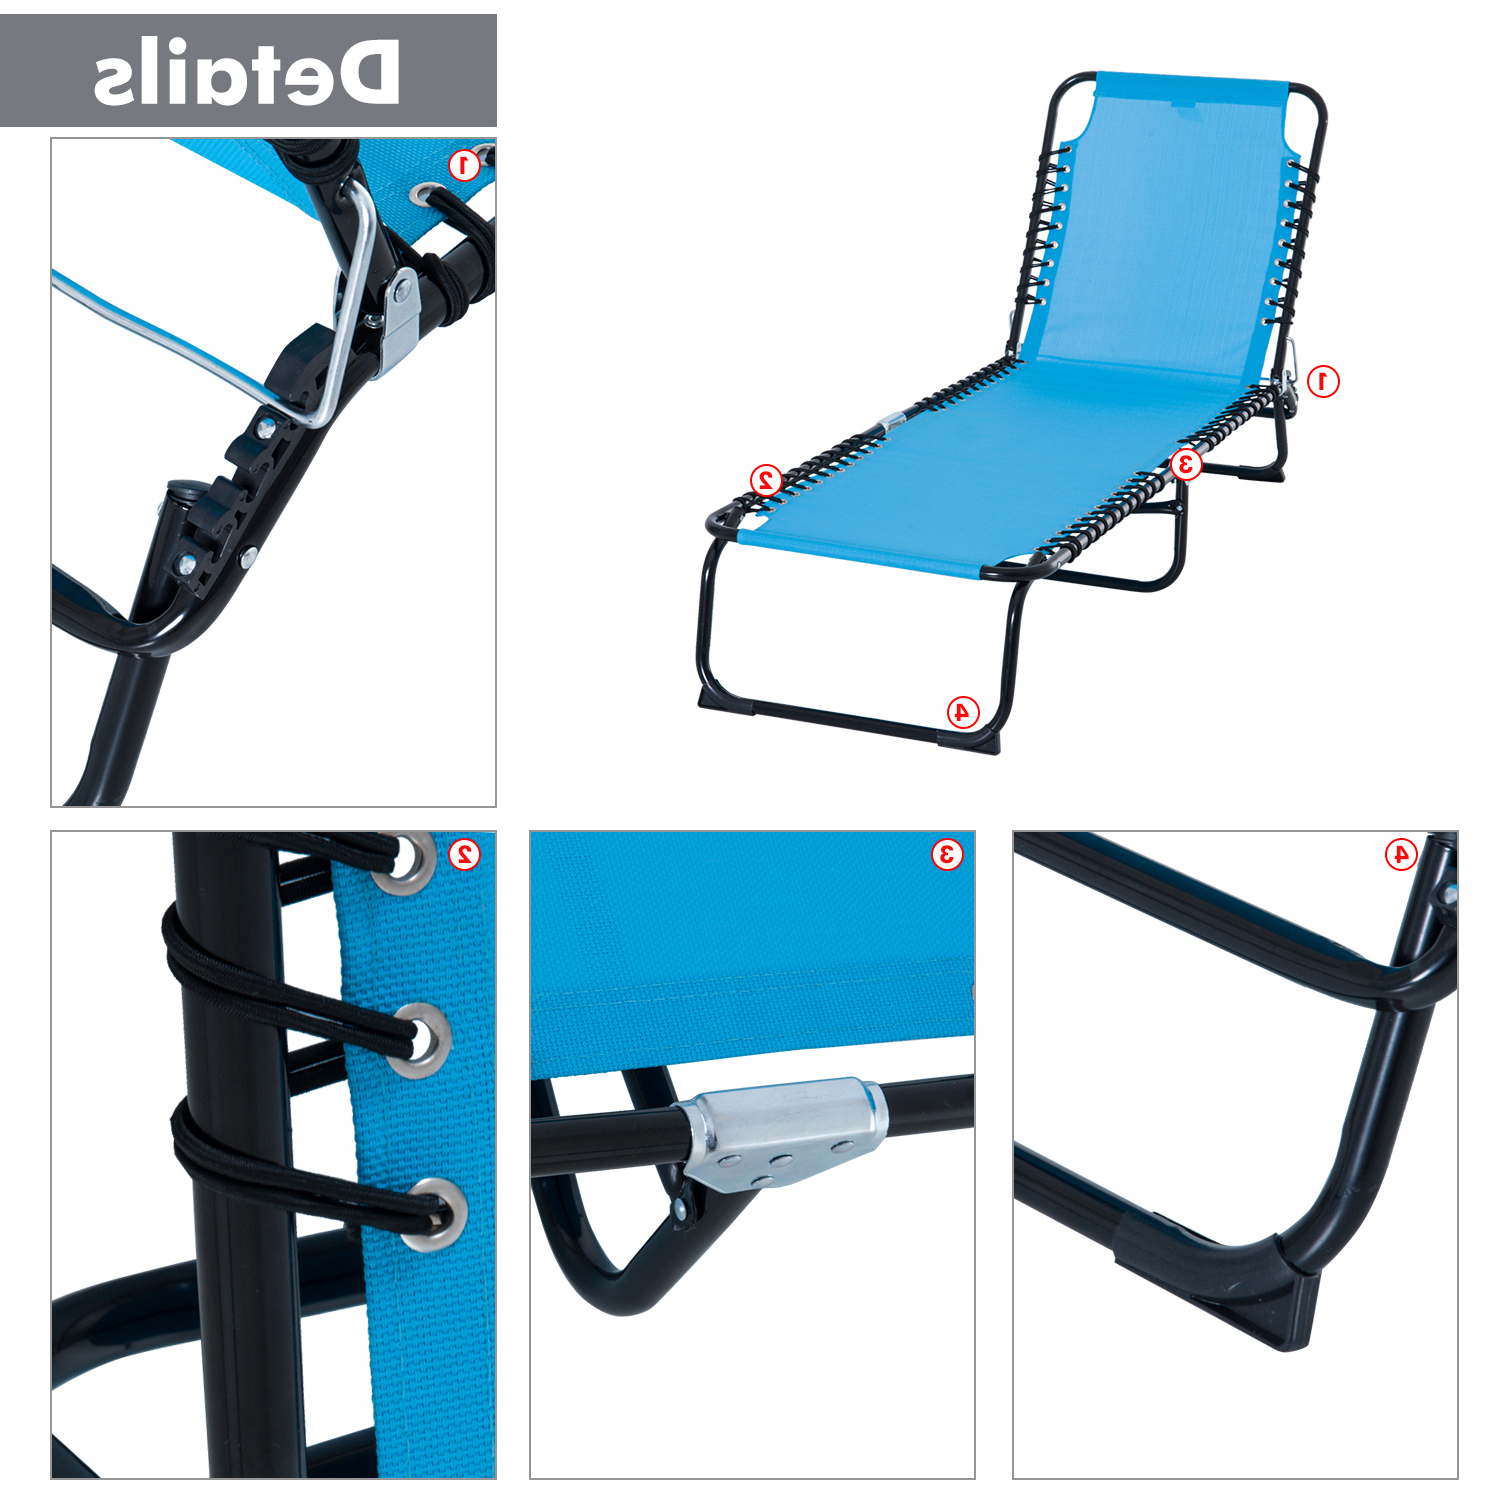 3 Position Portable Folding Reclining Beach Chaise Lounges Regarding Latest Outsunny Portable 3 Position Reclining Folding Beach Chaise Lounge Chair (Gallery 12 of 25)